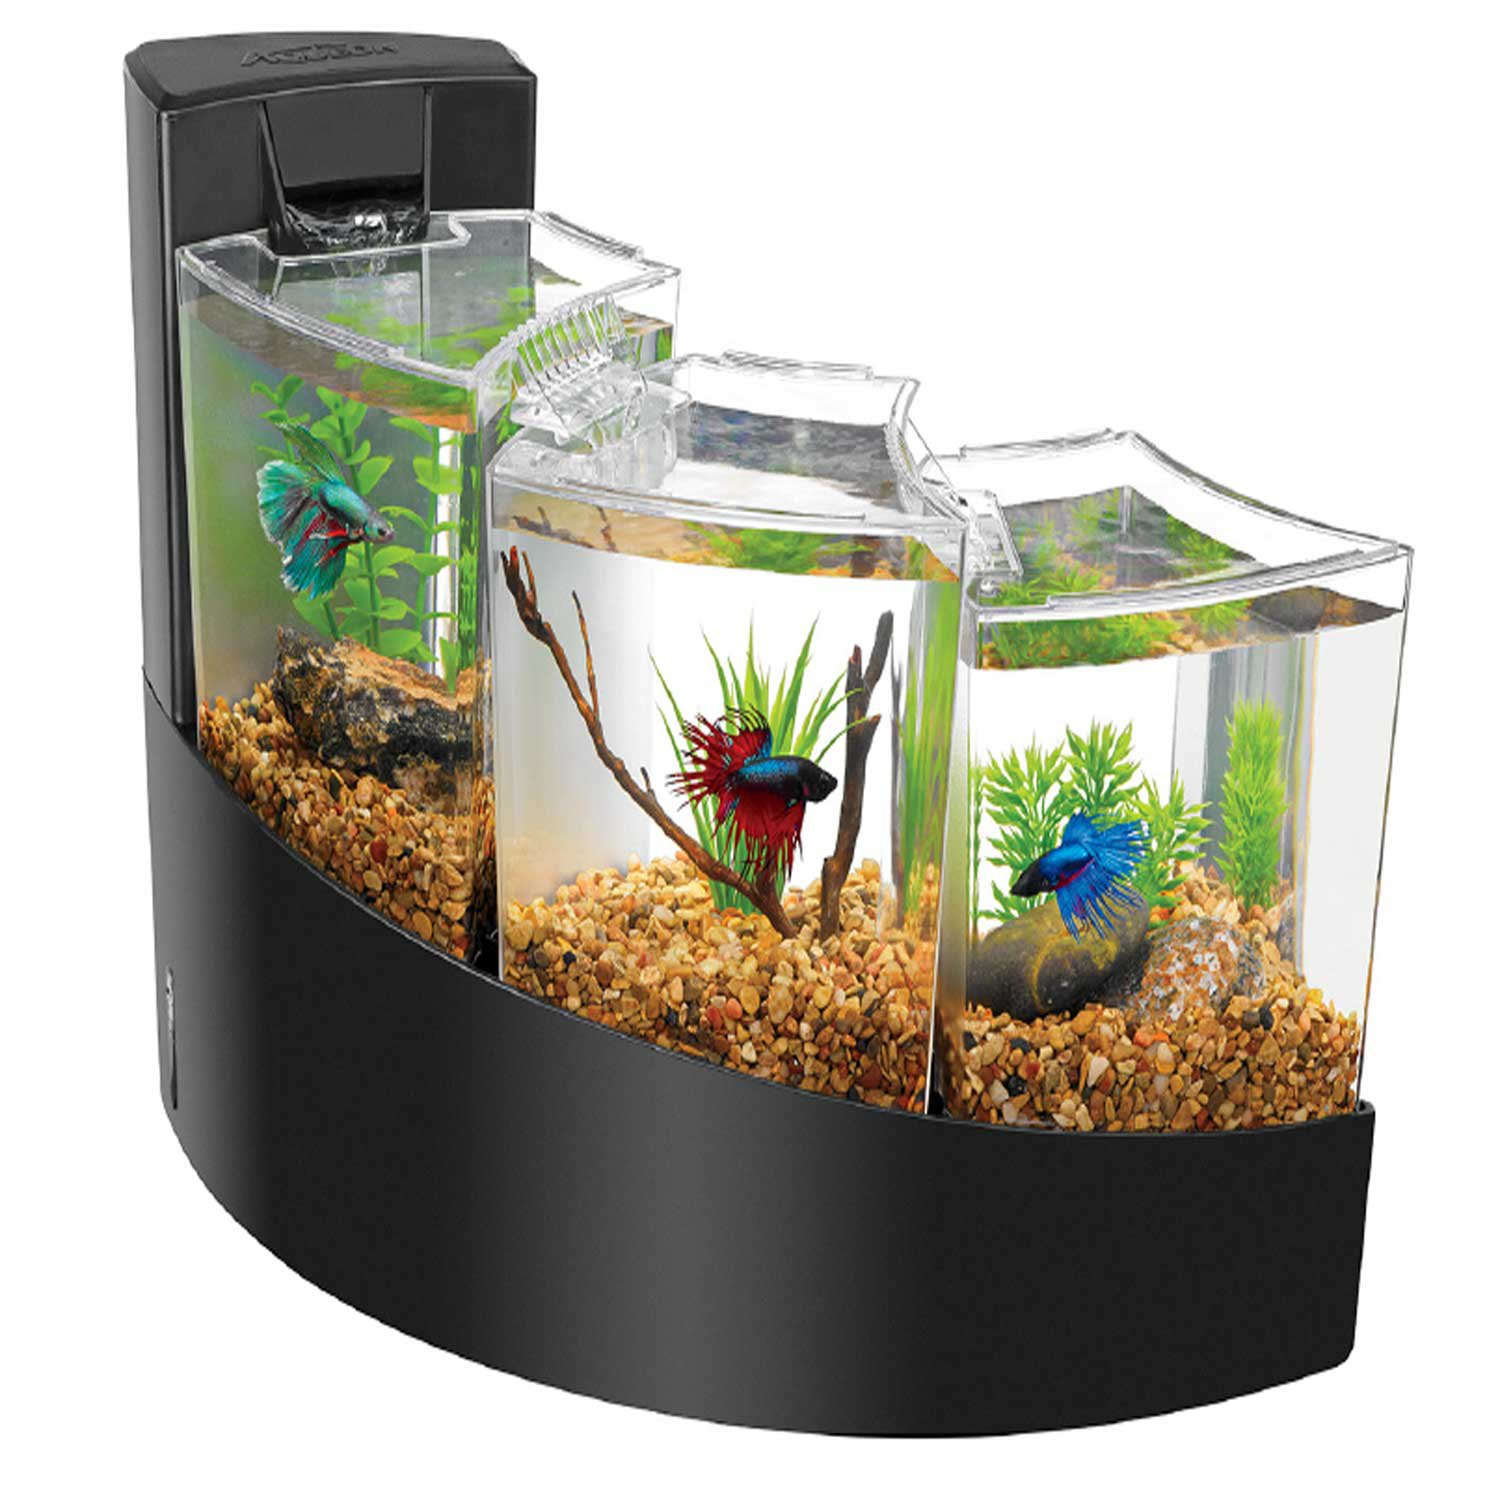 Fish aquarium shops in nagpur wholesalers dealers on for Small fish tank